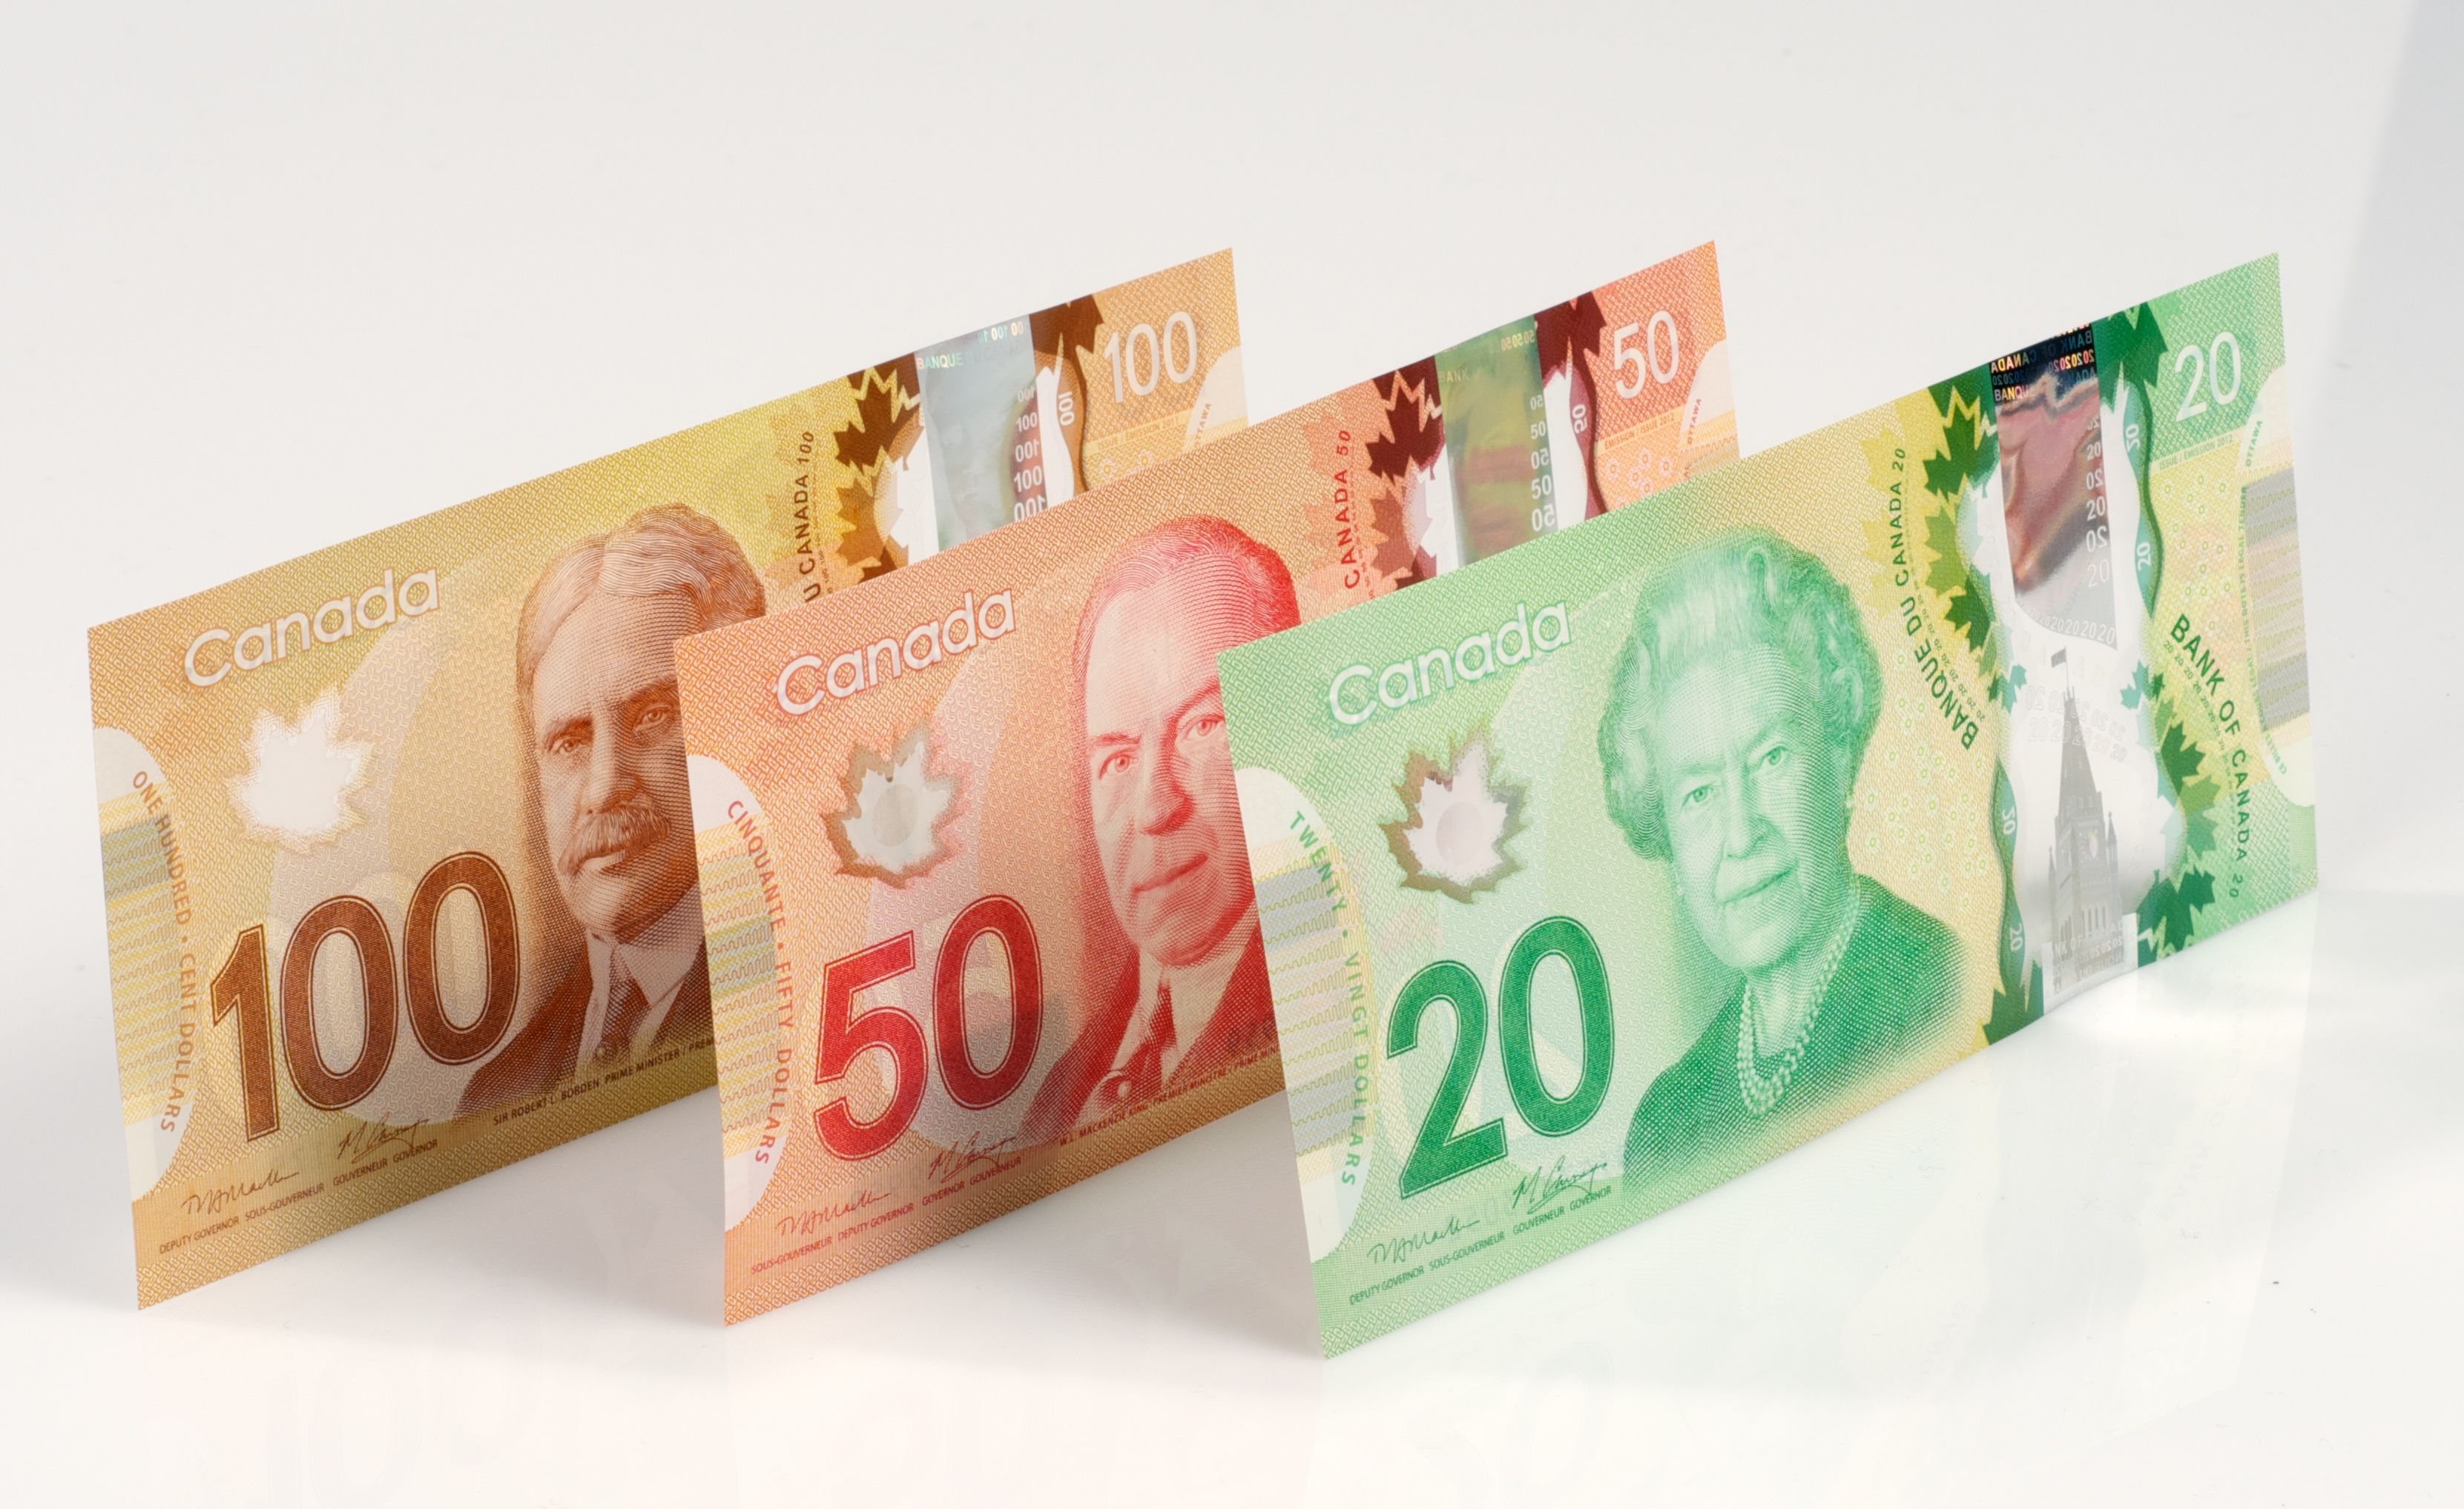 New Canadian 100 50 20 Payday Payday Loans Bank Notes